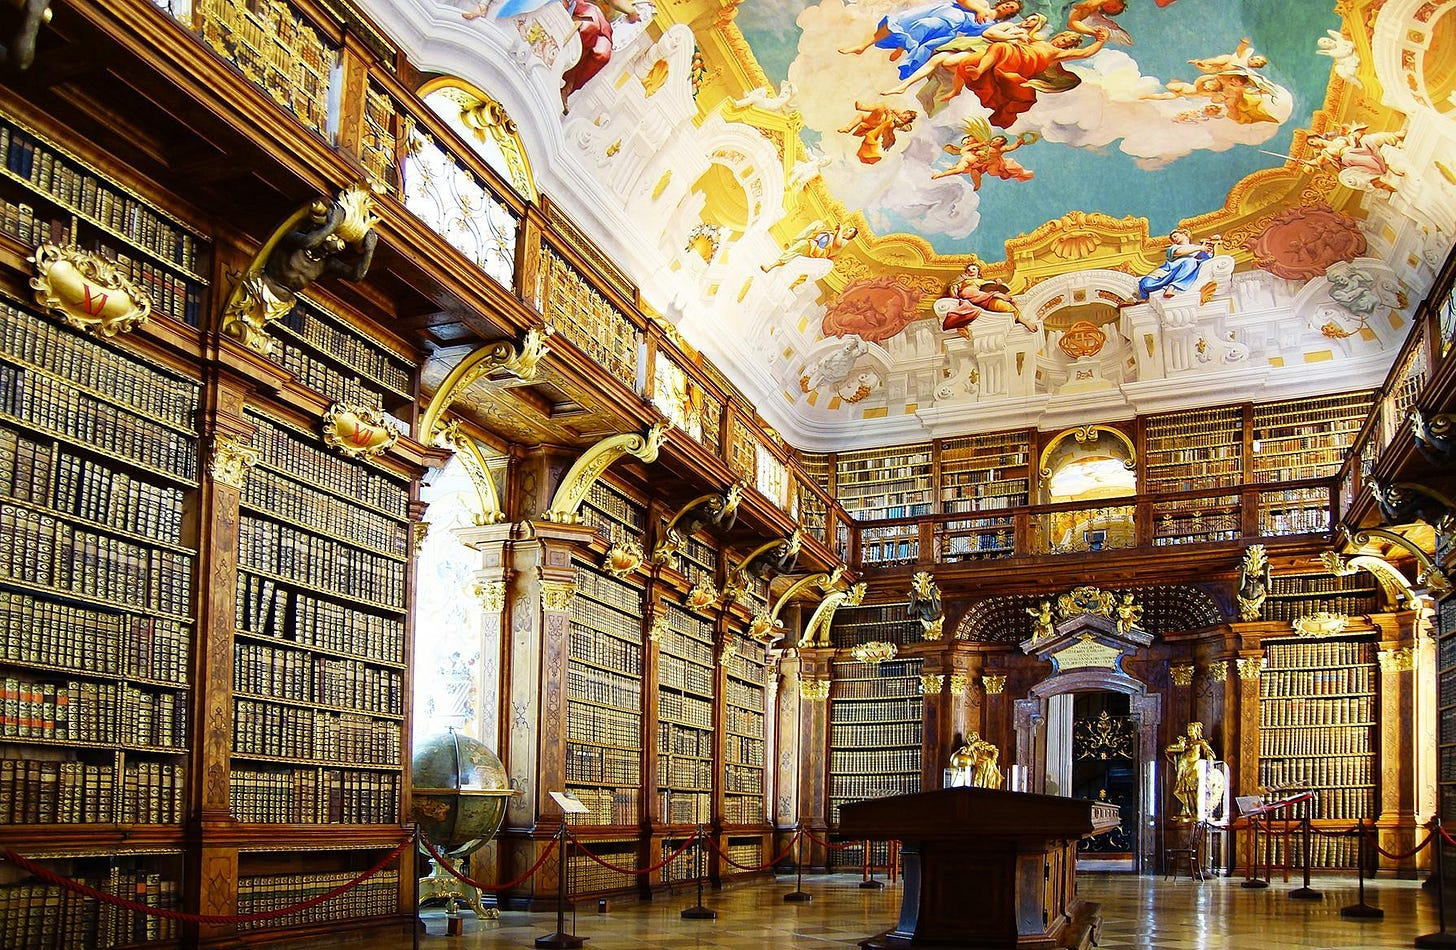 The Most Beautiful Libraries in the World | Slideshow | The Active Times